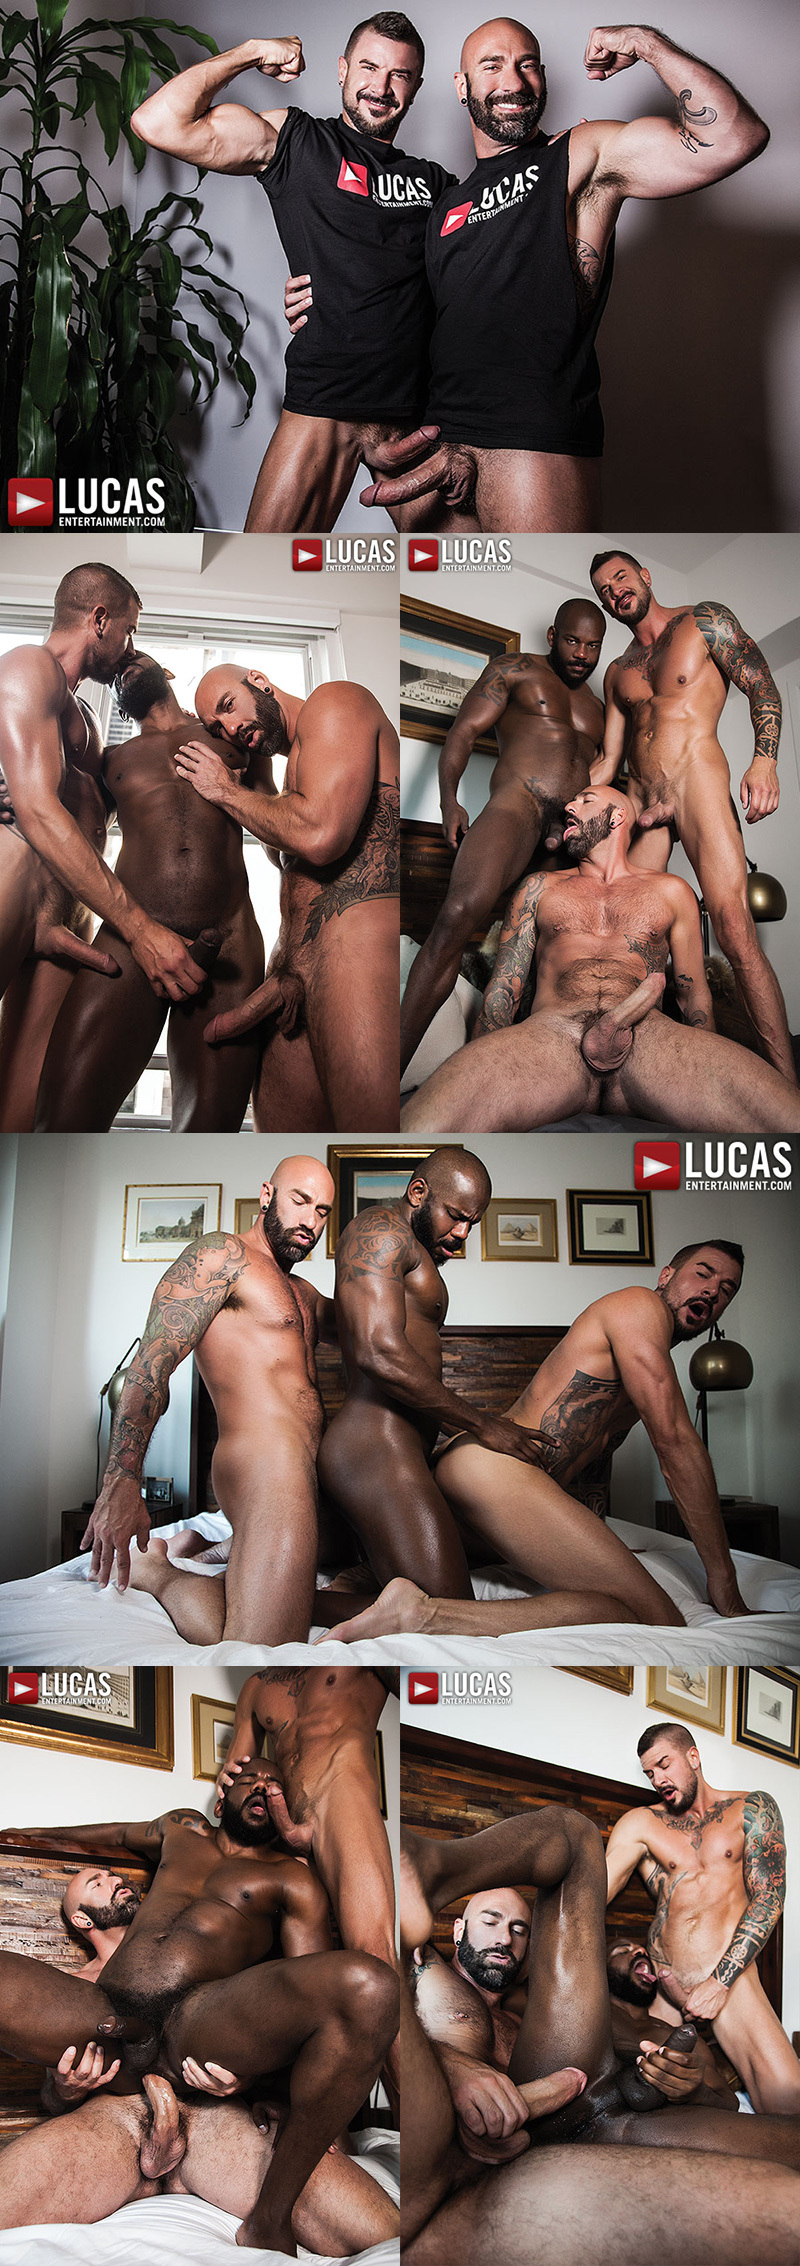 Interracial Bareback Threesome at Lucas Entertainment